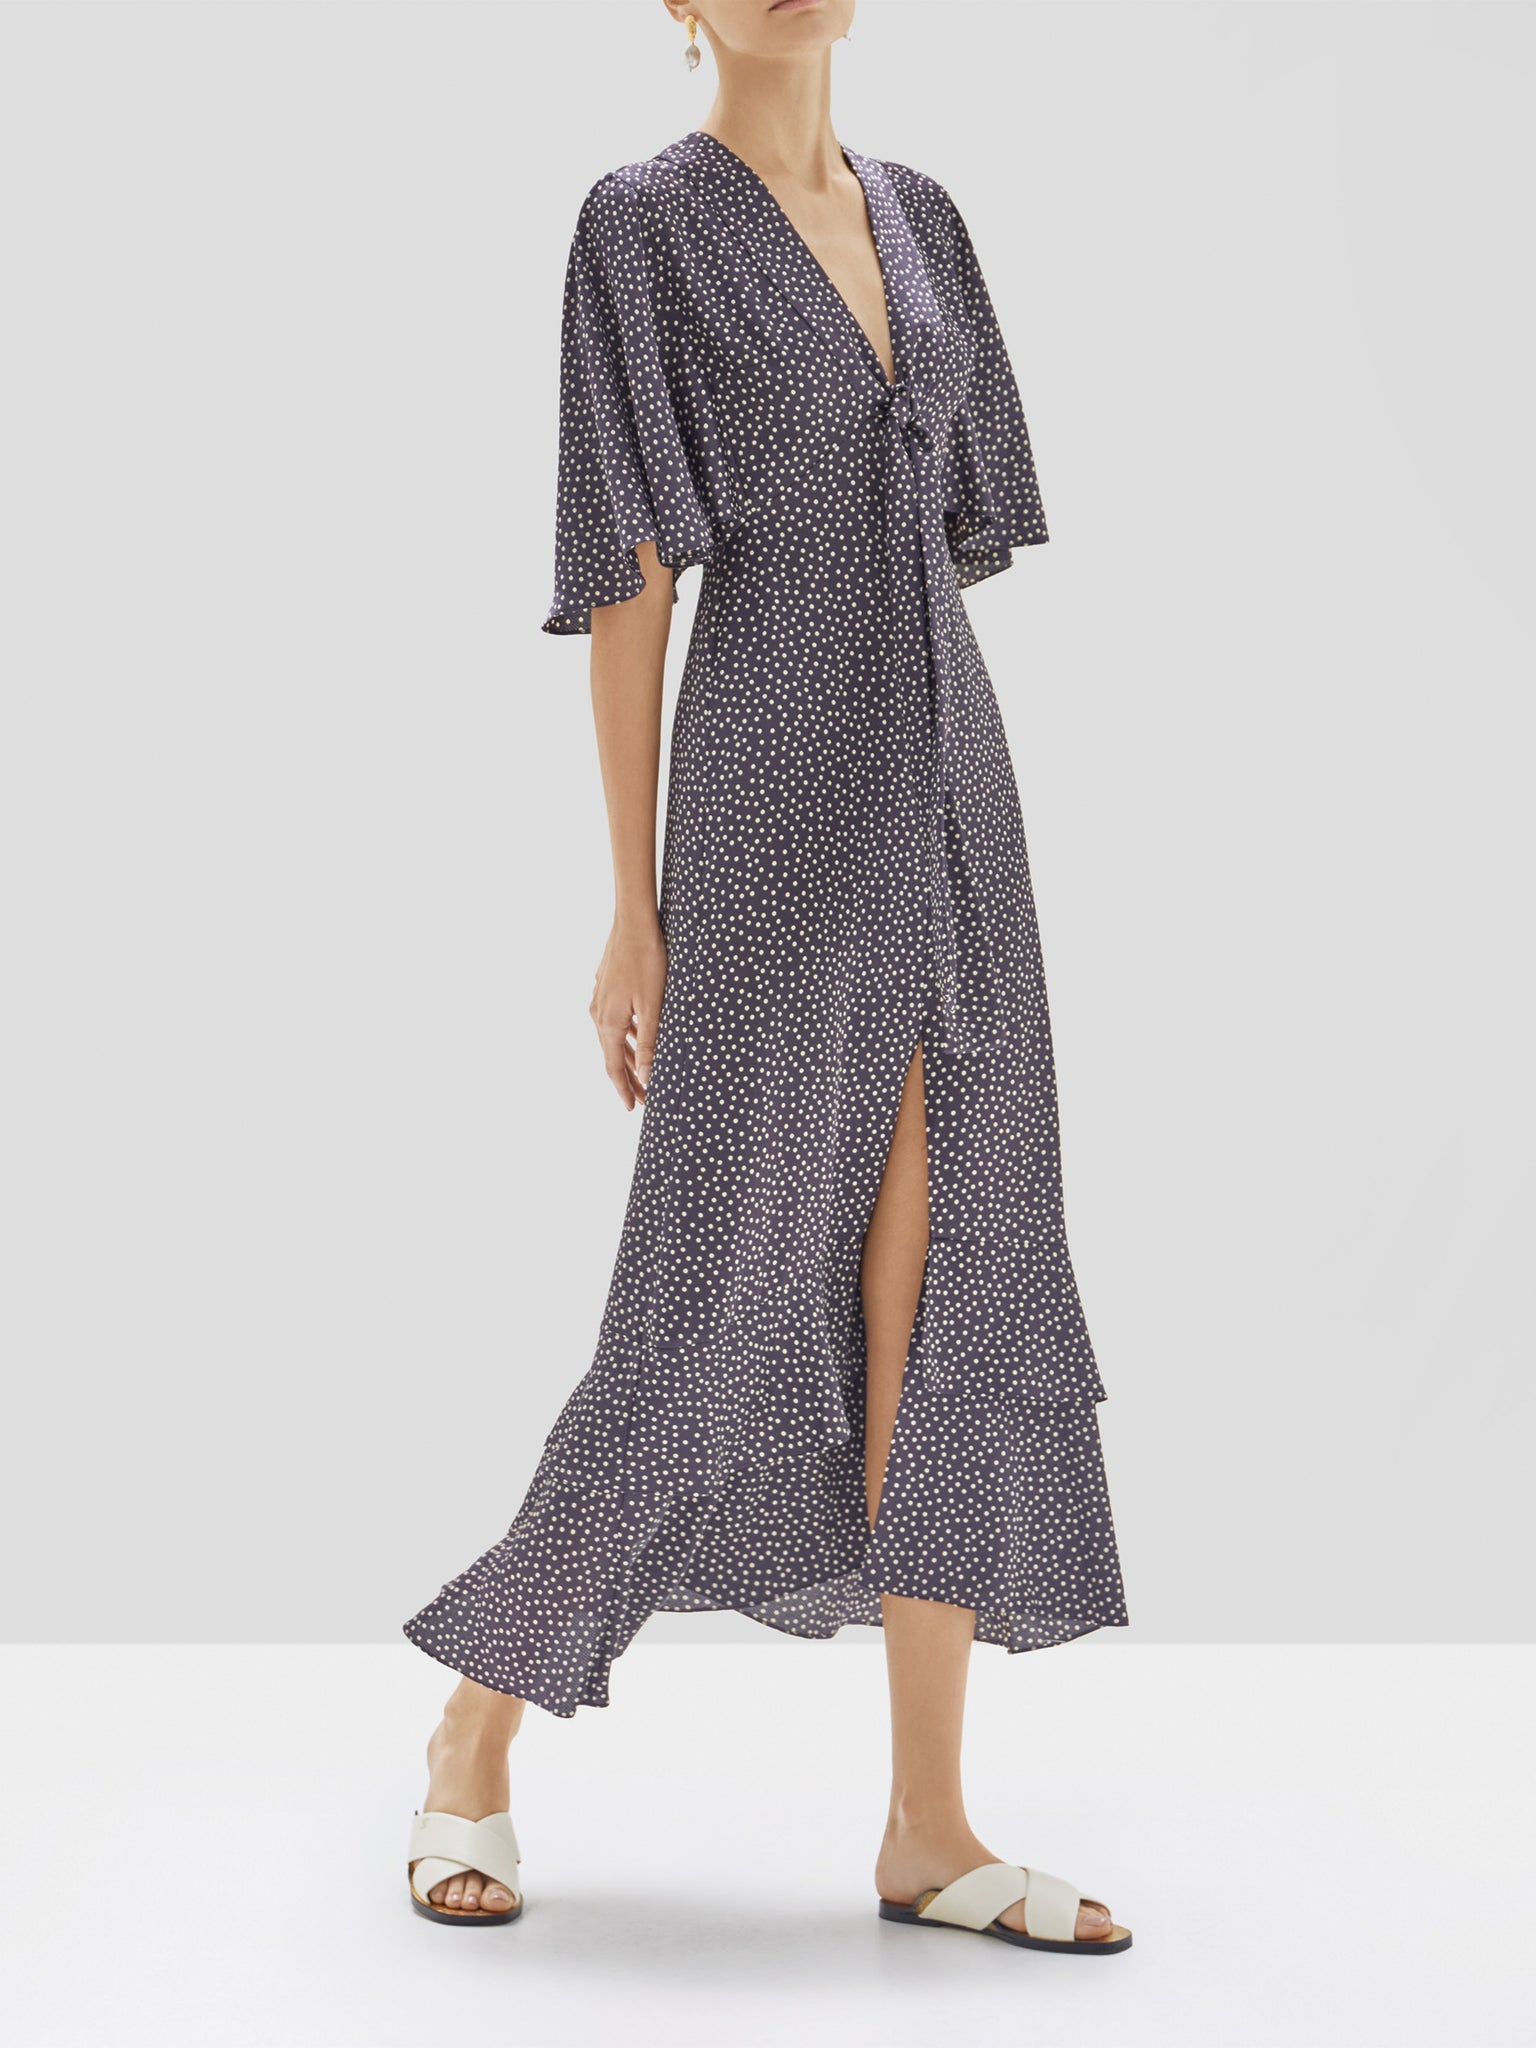 Alexis Kasany Dress in Navy and Beige Dot from the Pre Spring 2020 Collection